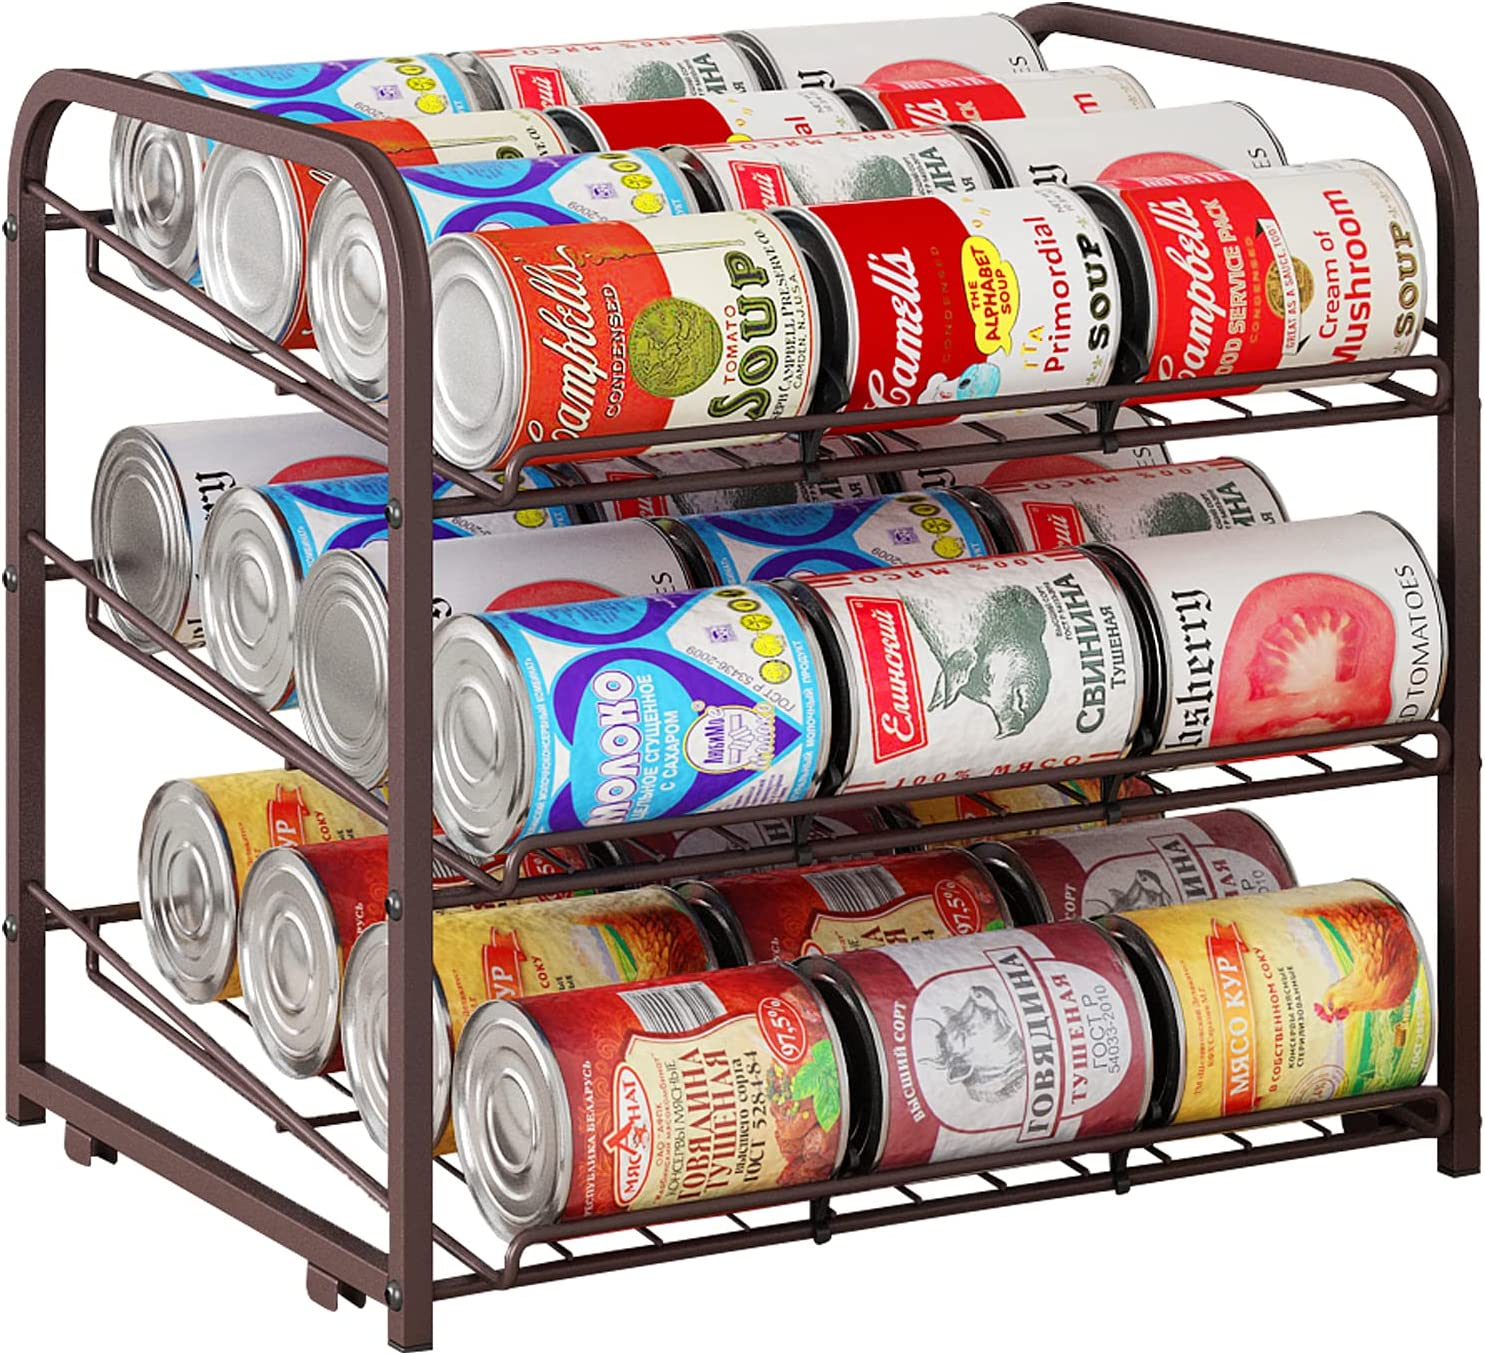 AIYAKA 3 Tier Stackable Can Rack Organizer,for food storage,kitchen cabinets or countertops,Storage for 36 cans,Bronze